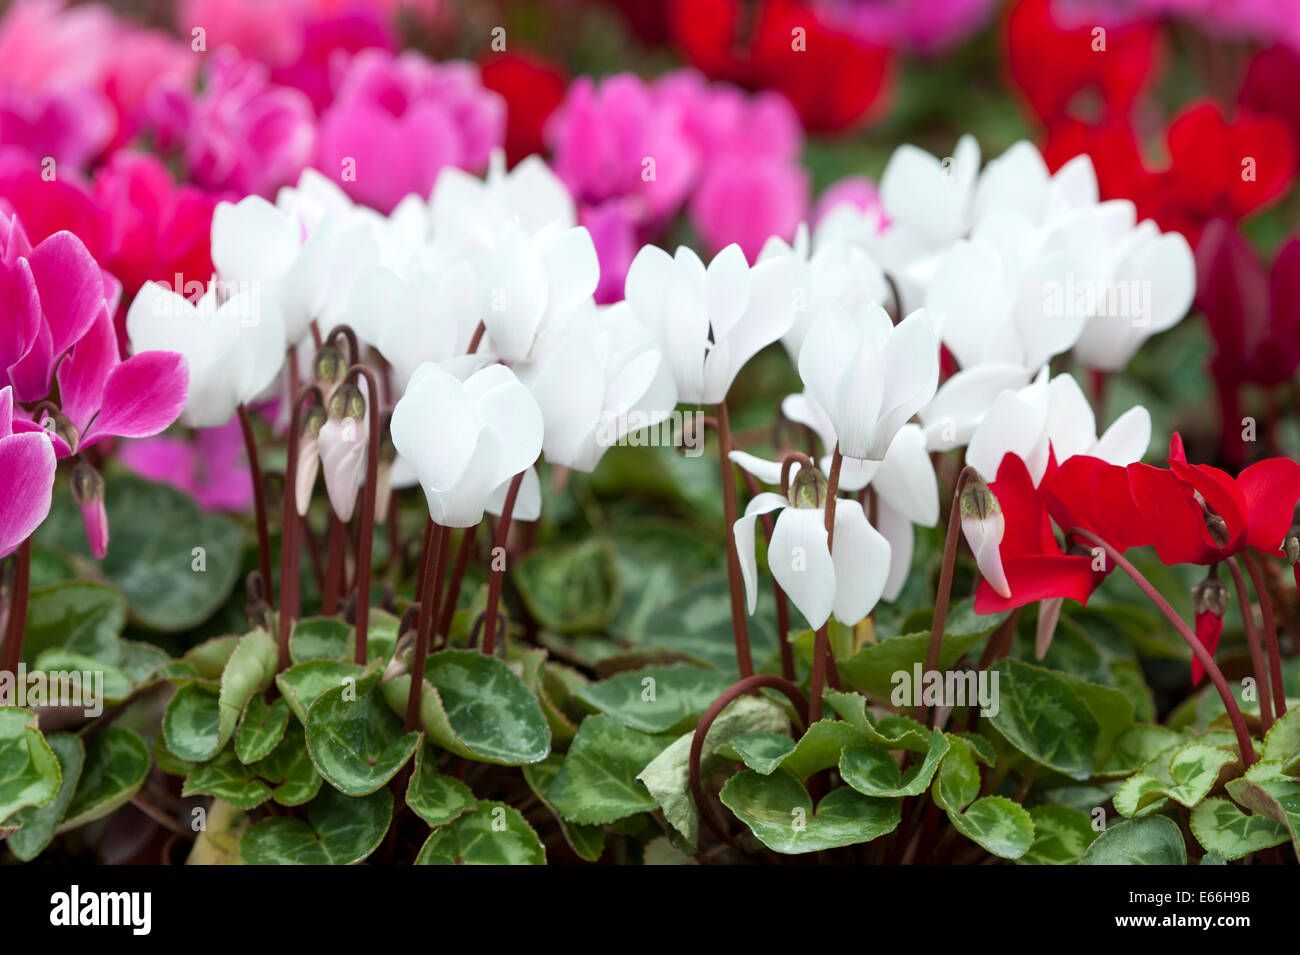 cyclamen white red pink magenta  drift flowers - Stock Image